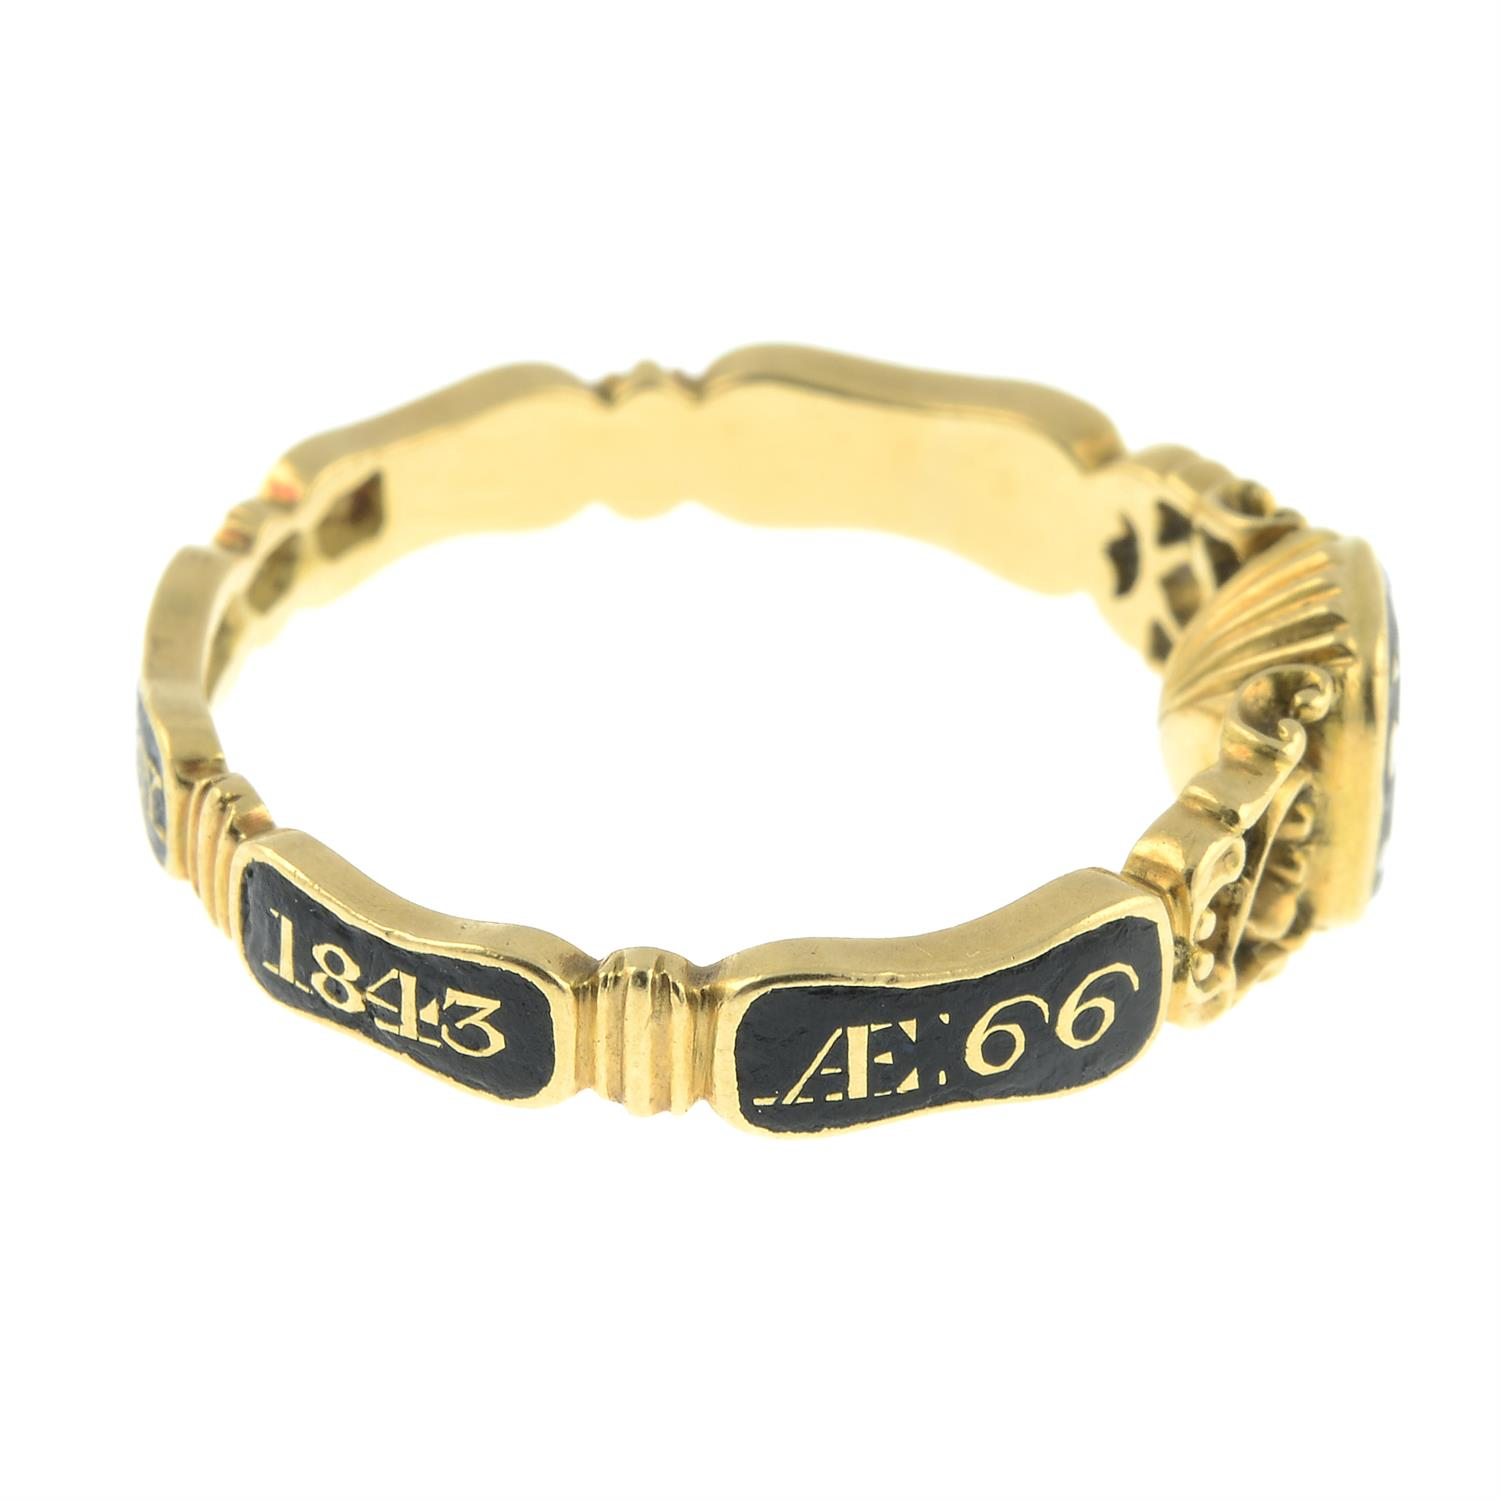 An early Victorian 18ct gold black enamel mourning ring, with pierced scrolling sides and woven - Image 5 of 7